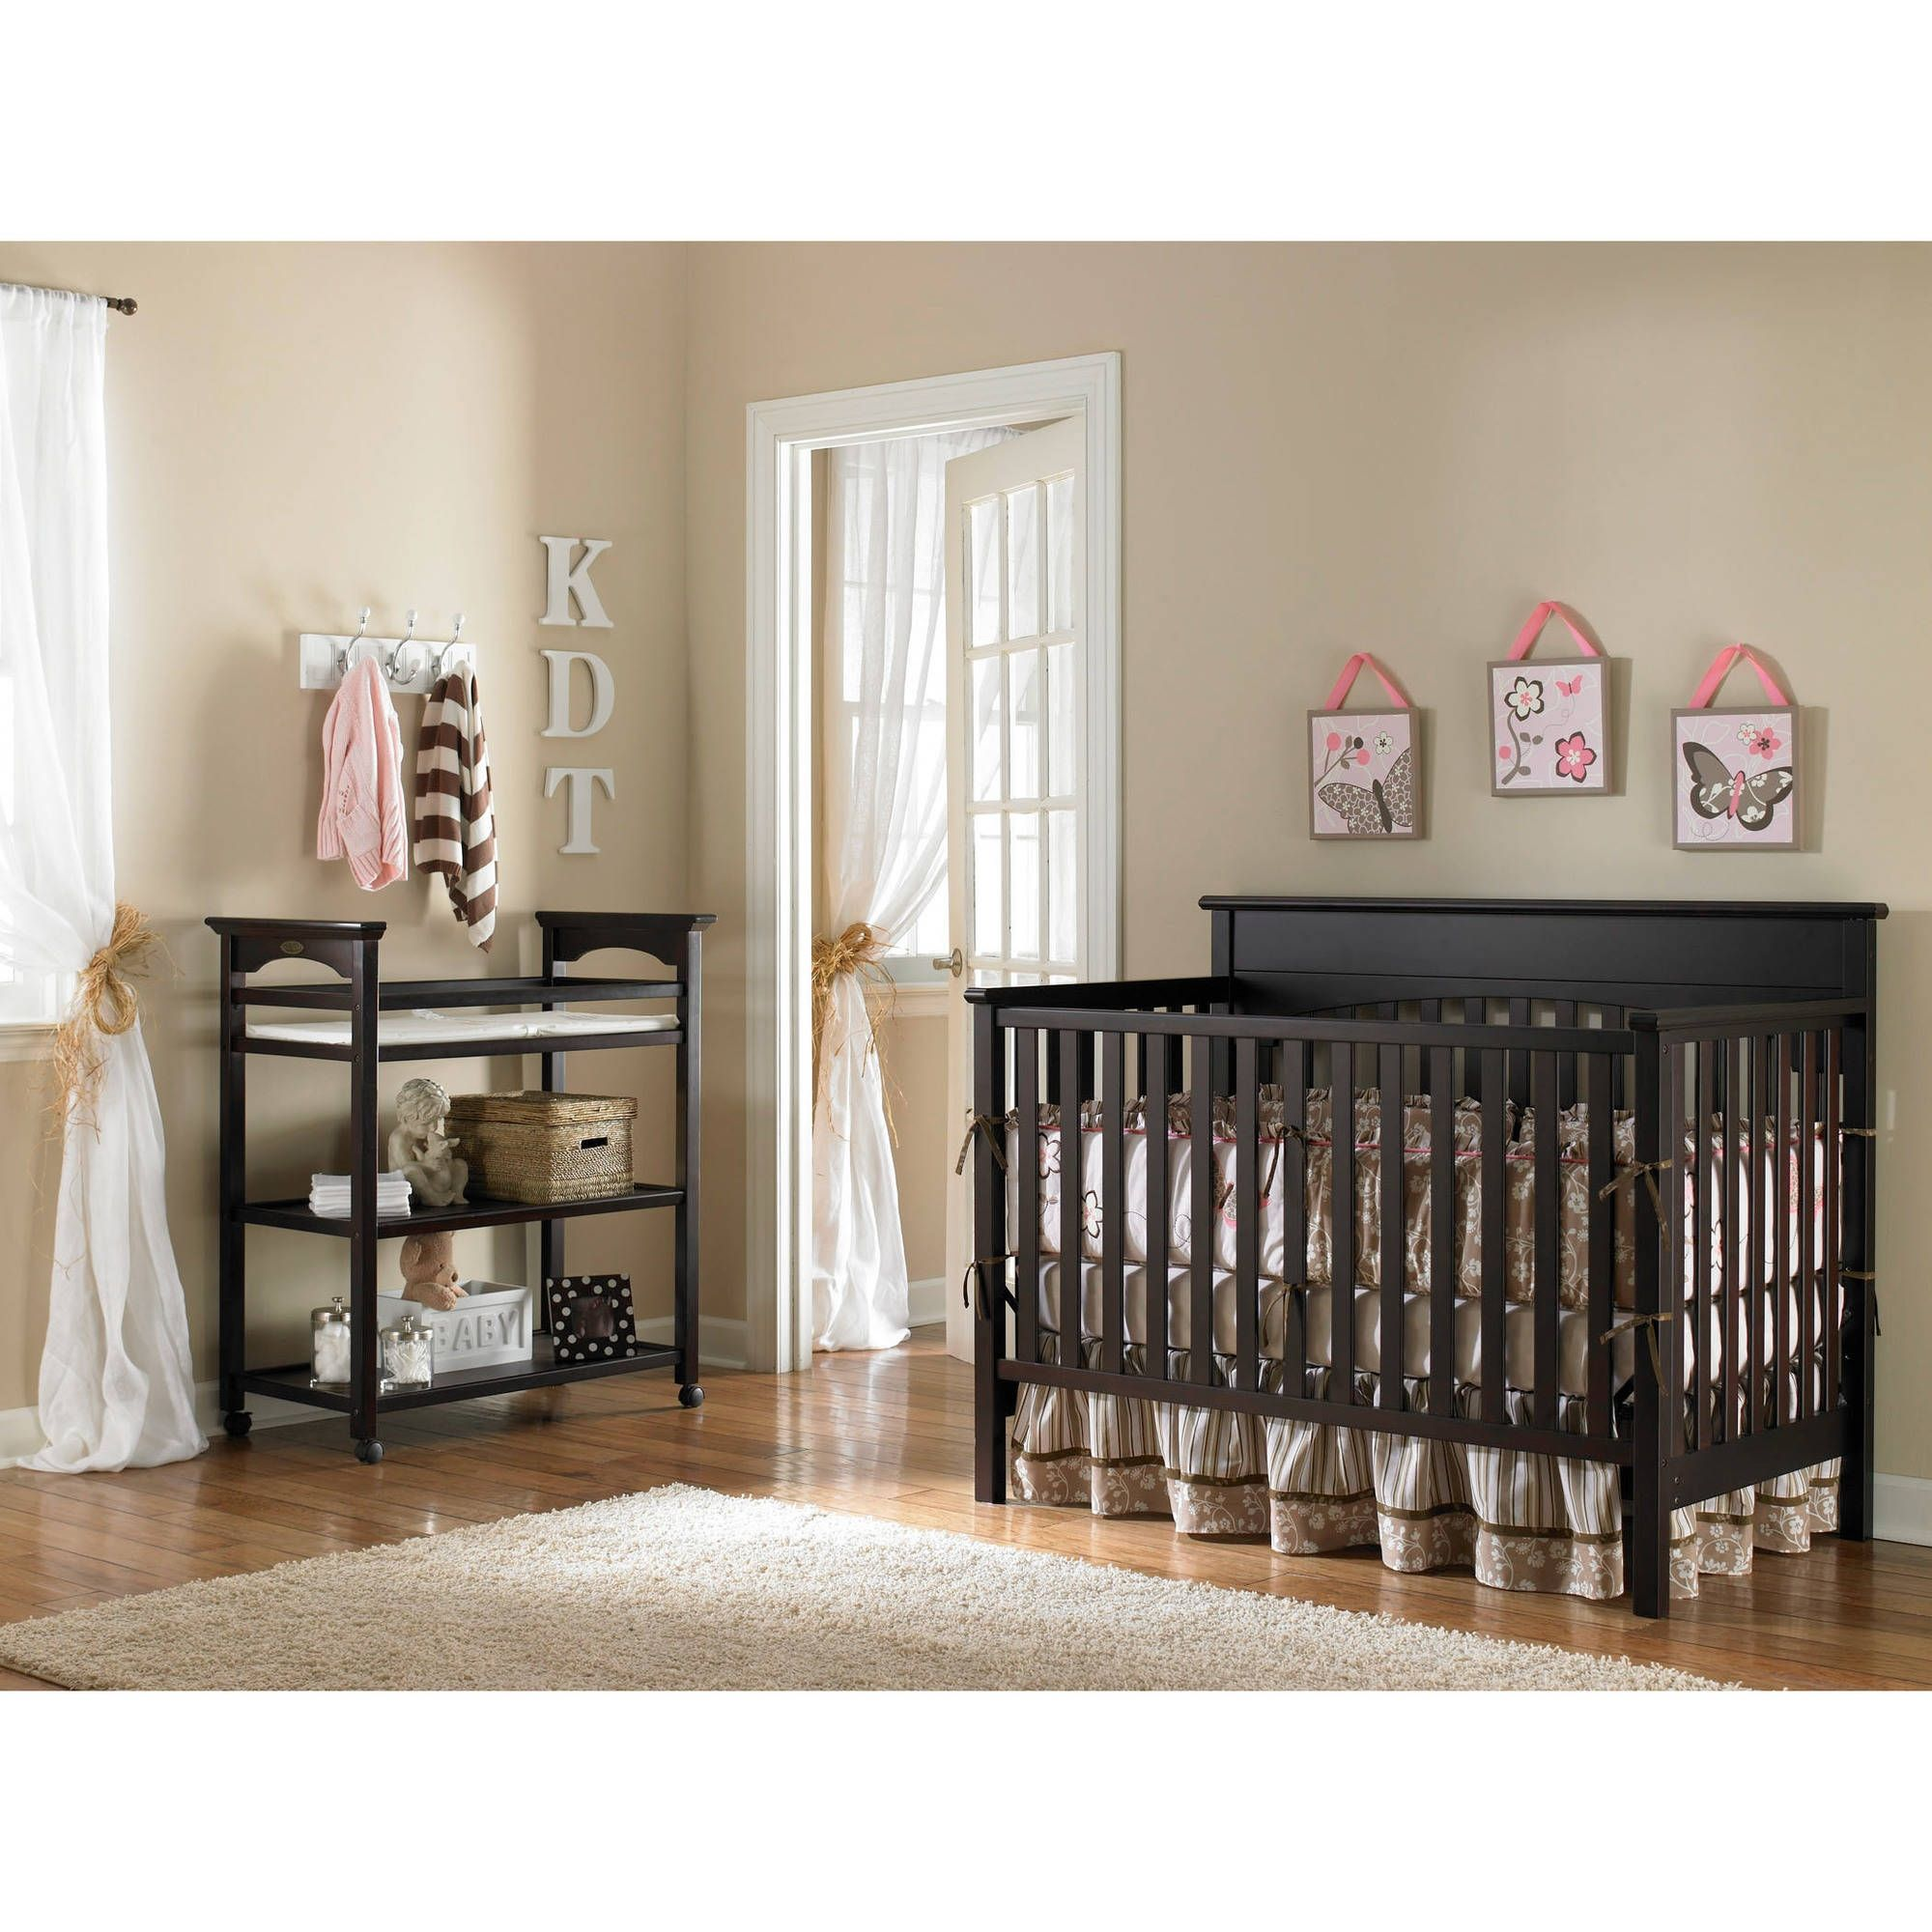 Graco cherry wood crib and changing table samhosted